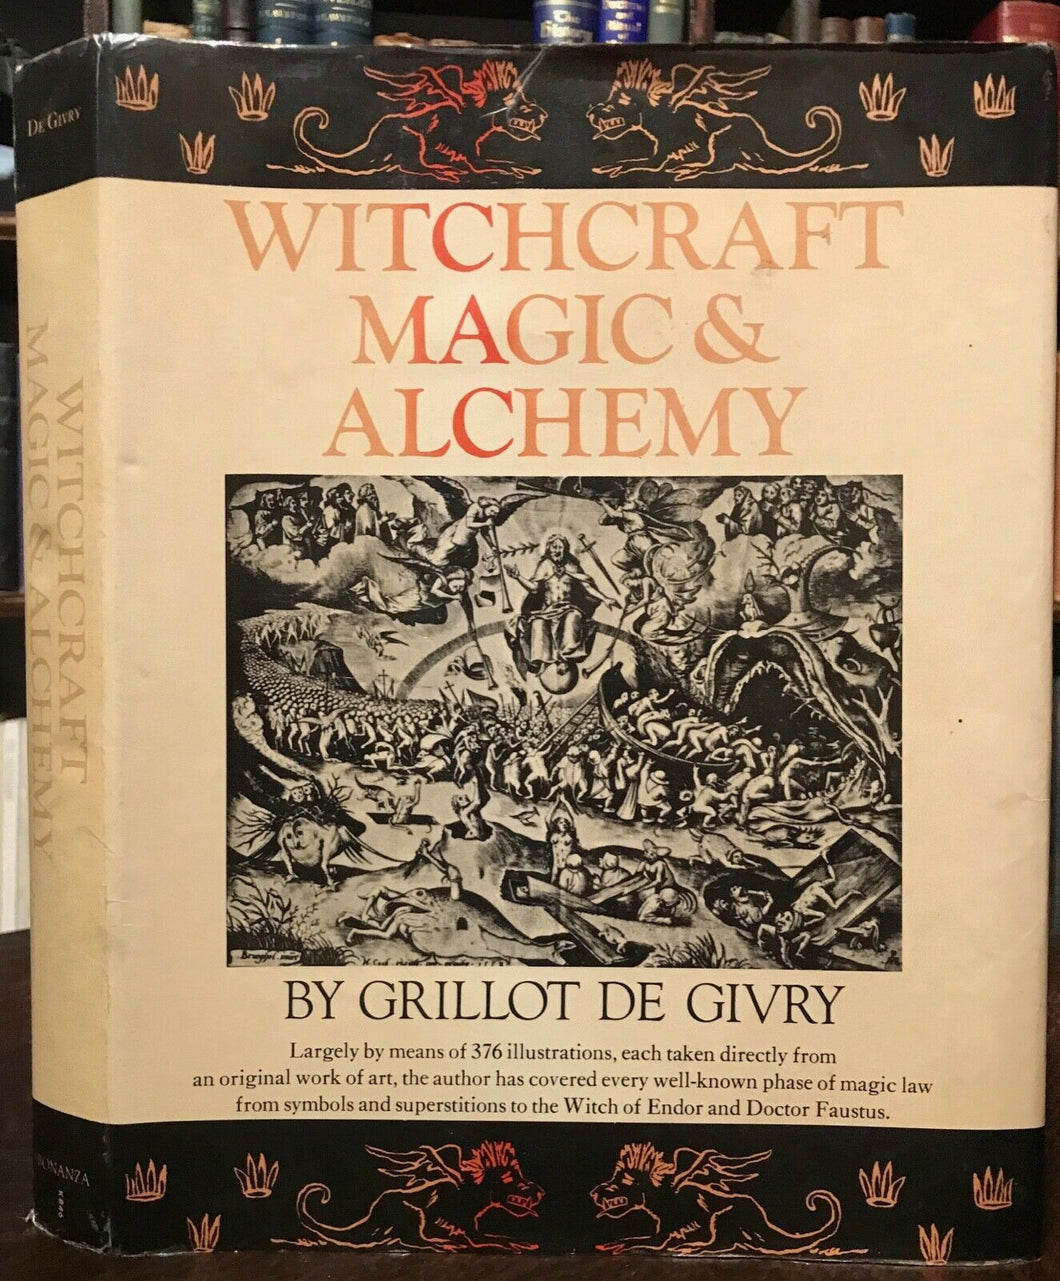 WITCHCRAFT, MAGIC & ALCHEMY - De Givry, 1971 - DEMONS SORCERY MAGICK WICCA